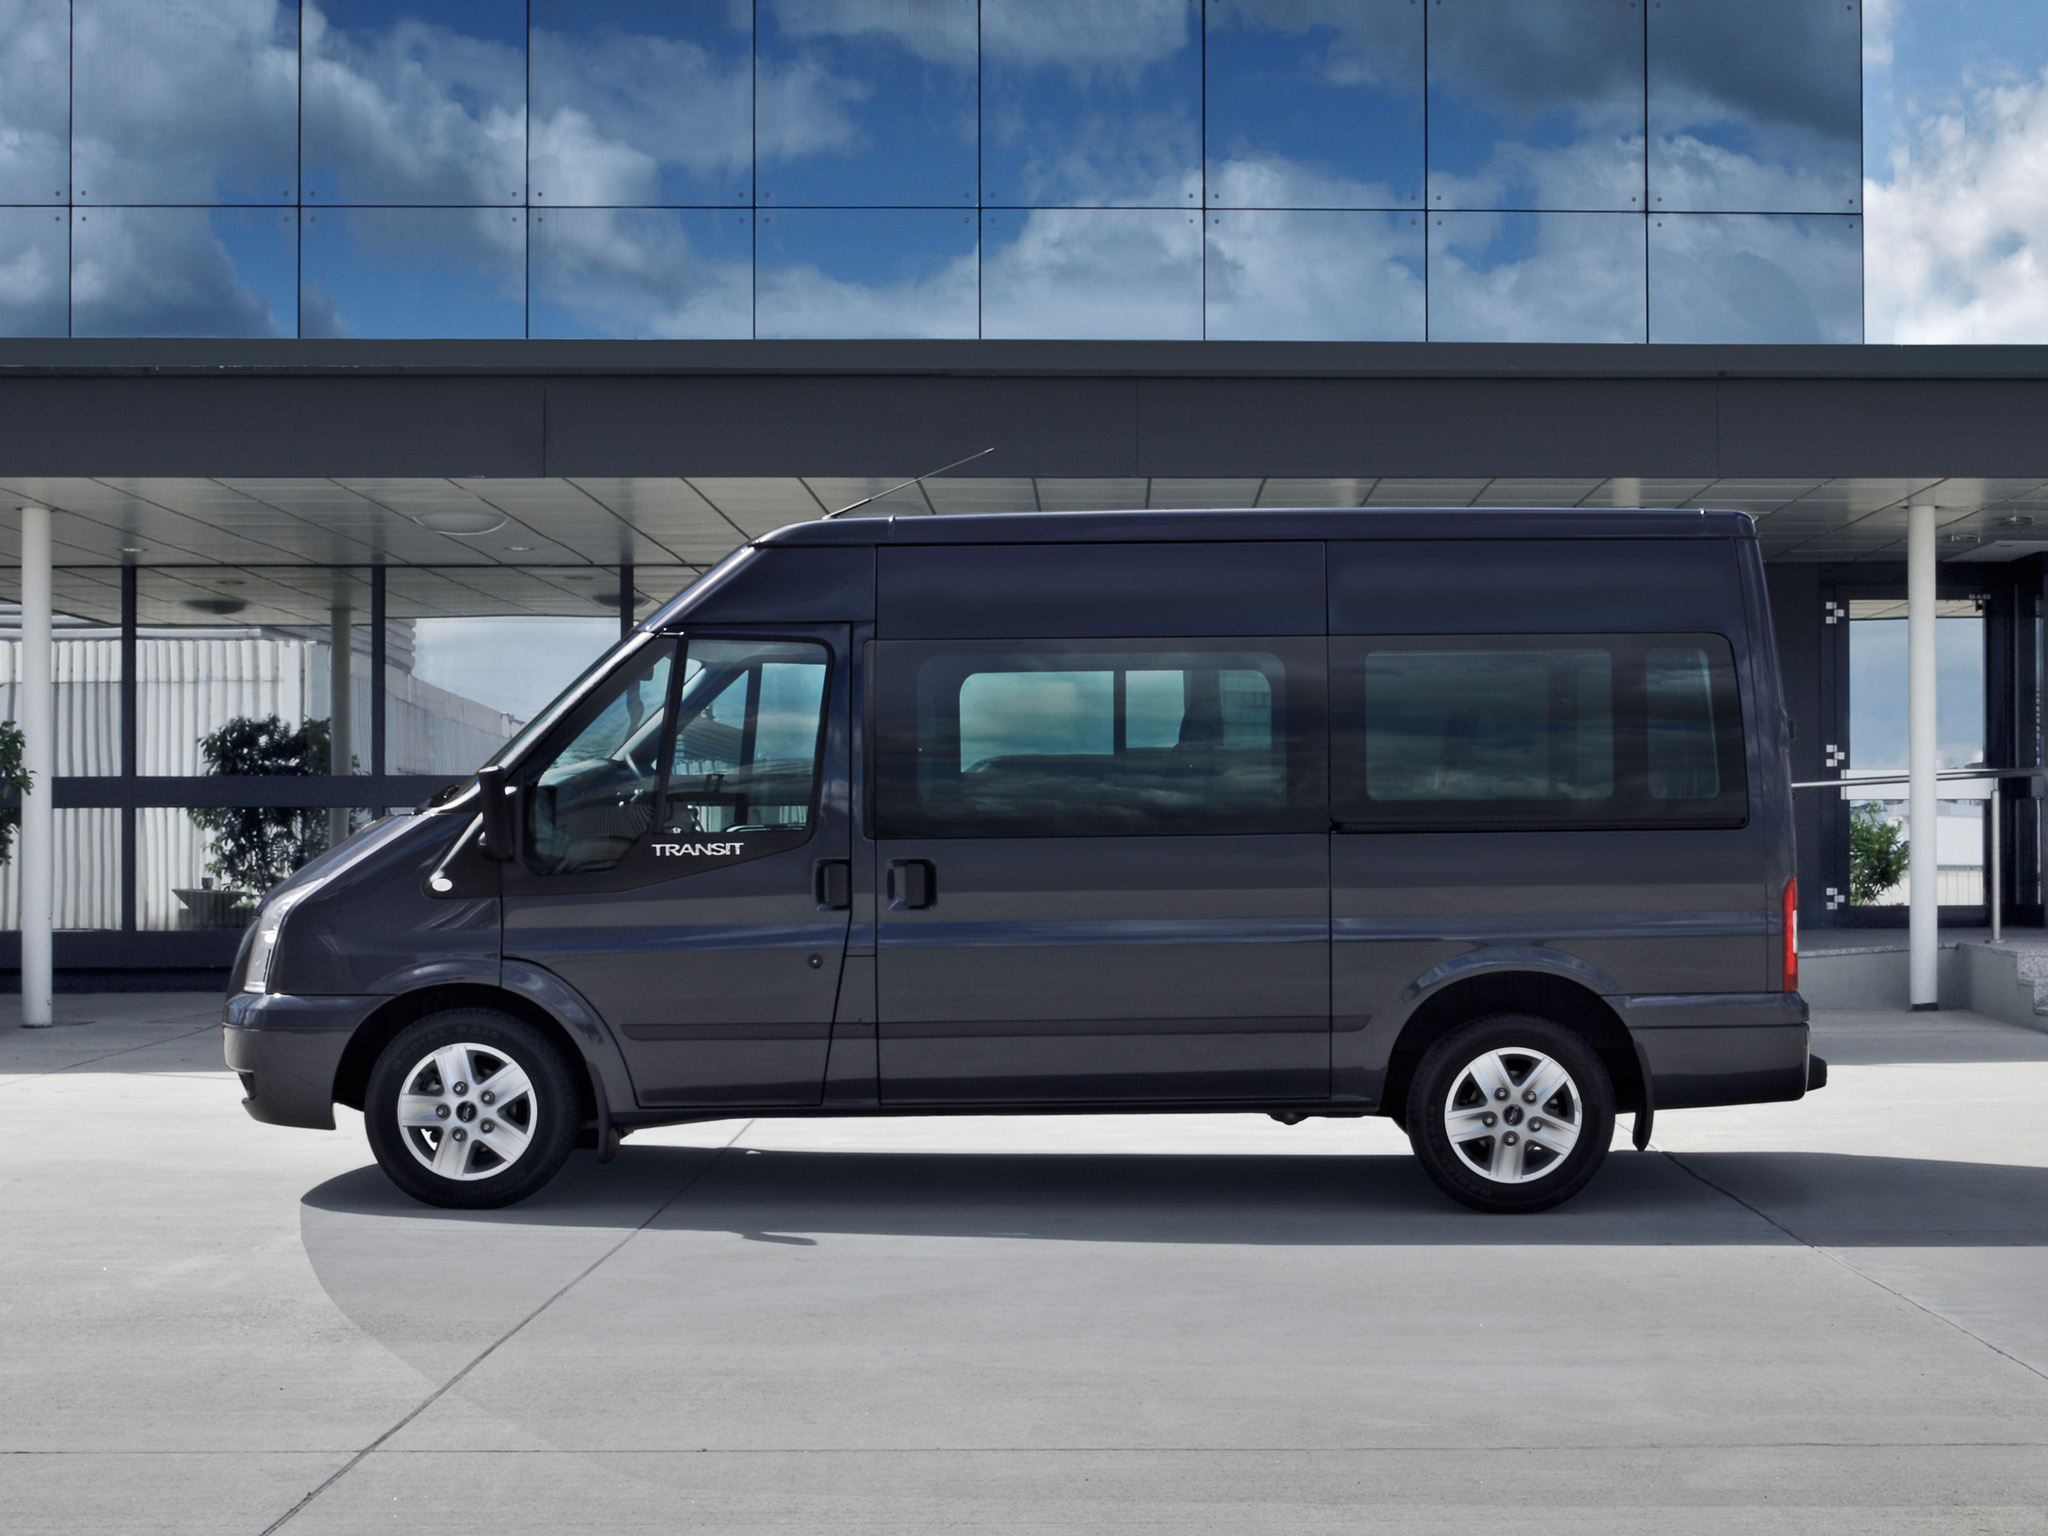 ford transit 2011 ford transit 2011 photo 05 car in pictures car photo gallery. Black Bedroom Furniture Sets. Home Design Ideas